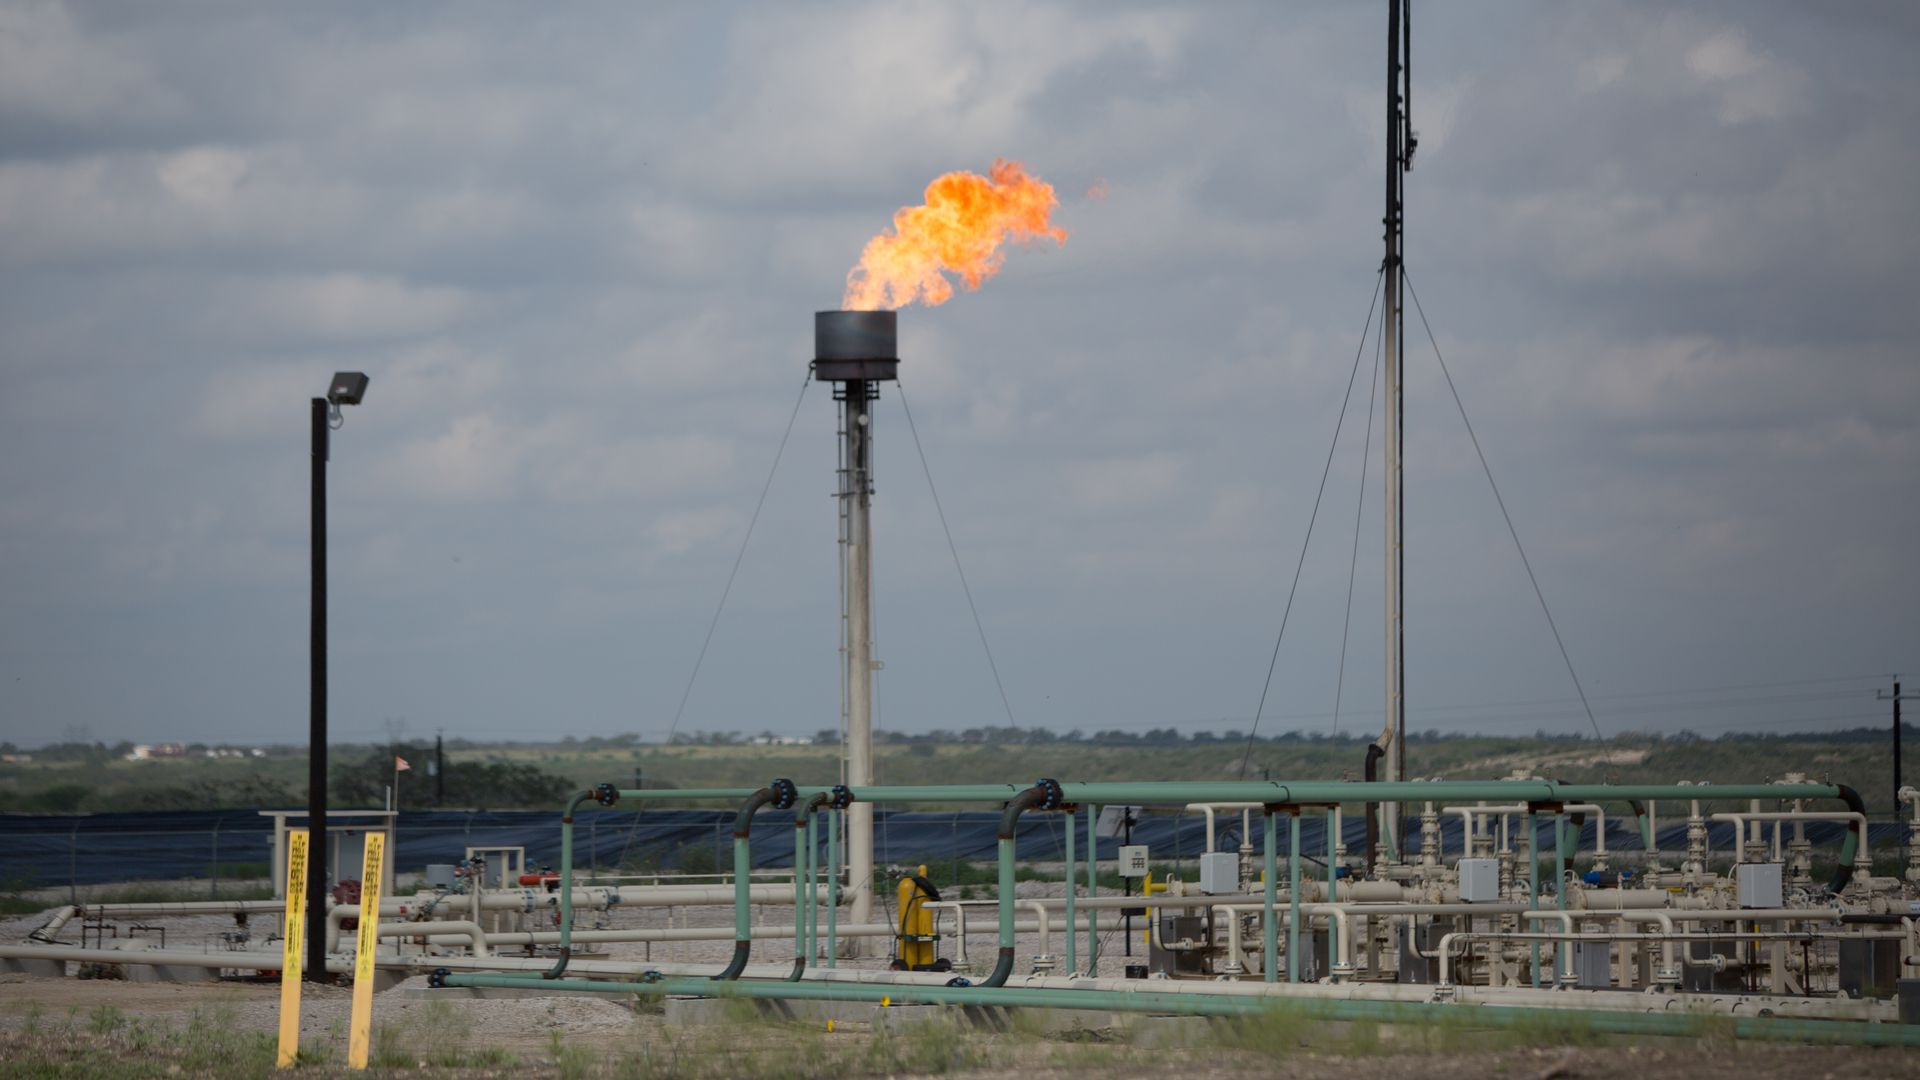 Flaring gas at a hyrdrolic fraturing site in Texas.